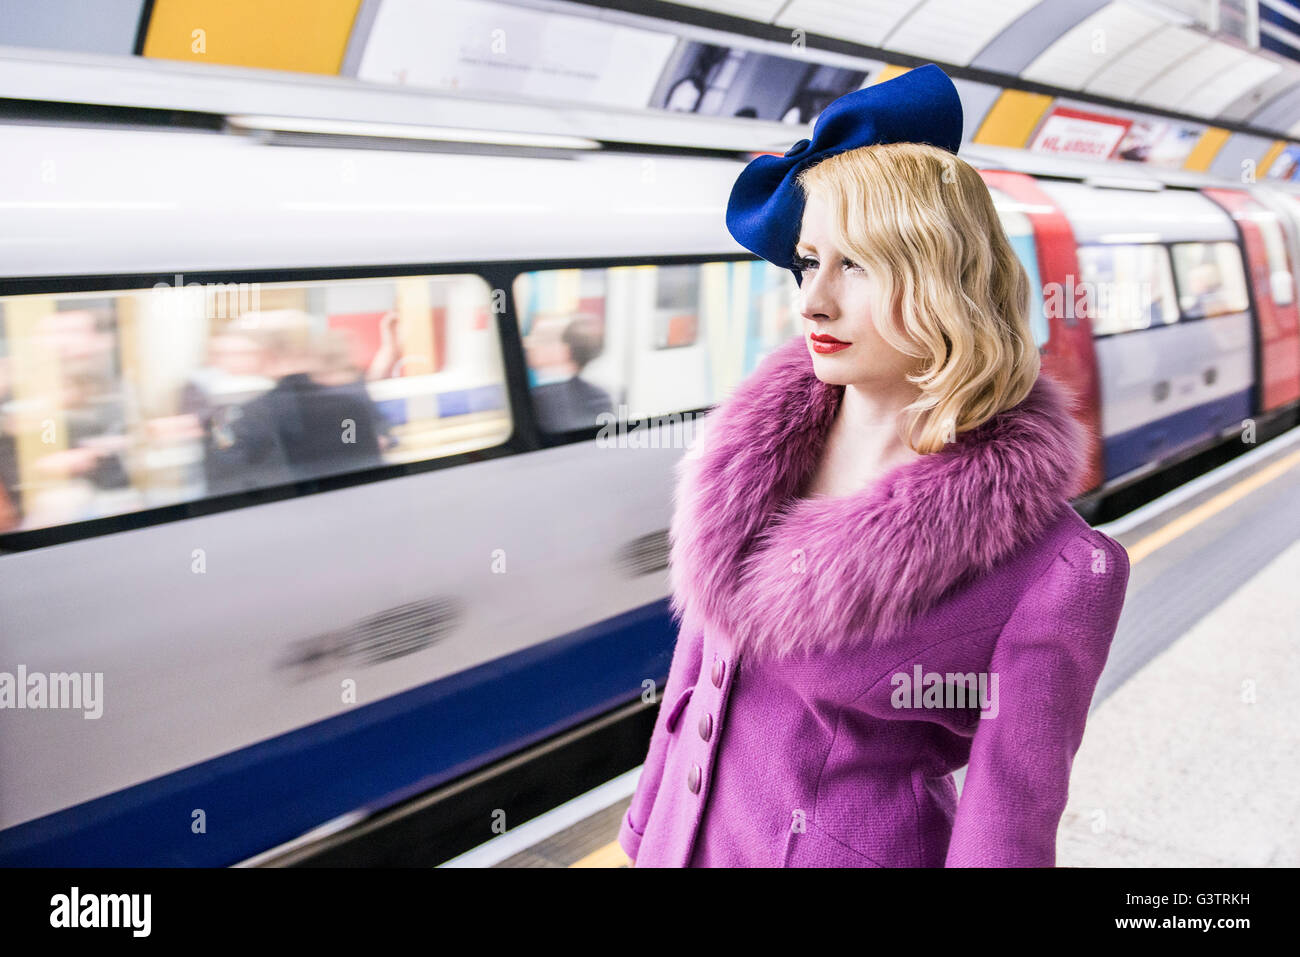 A stylish young woman dressed in 1930s style clothing standing on a tube platform. - Stock Image